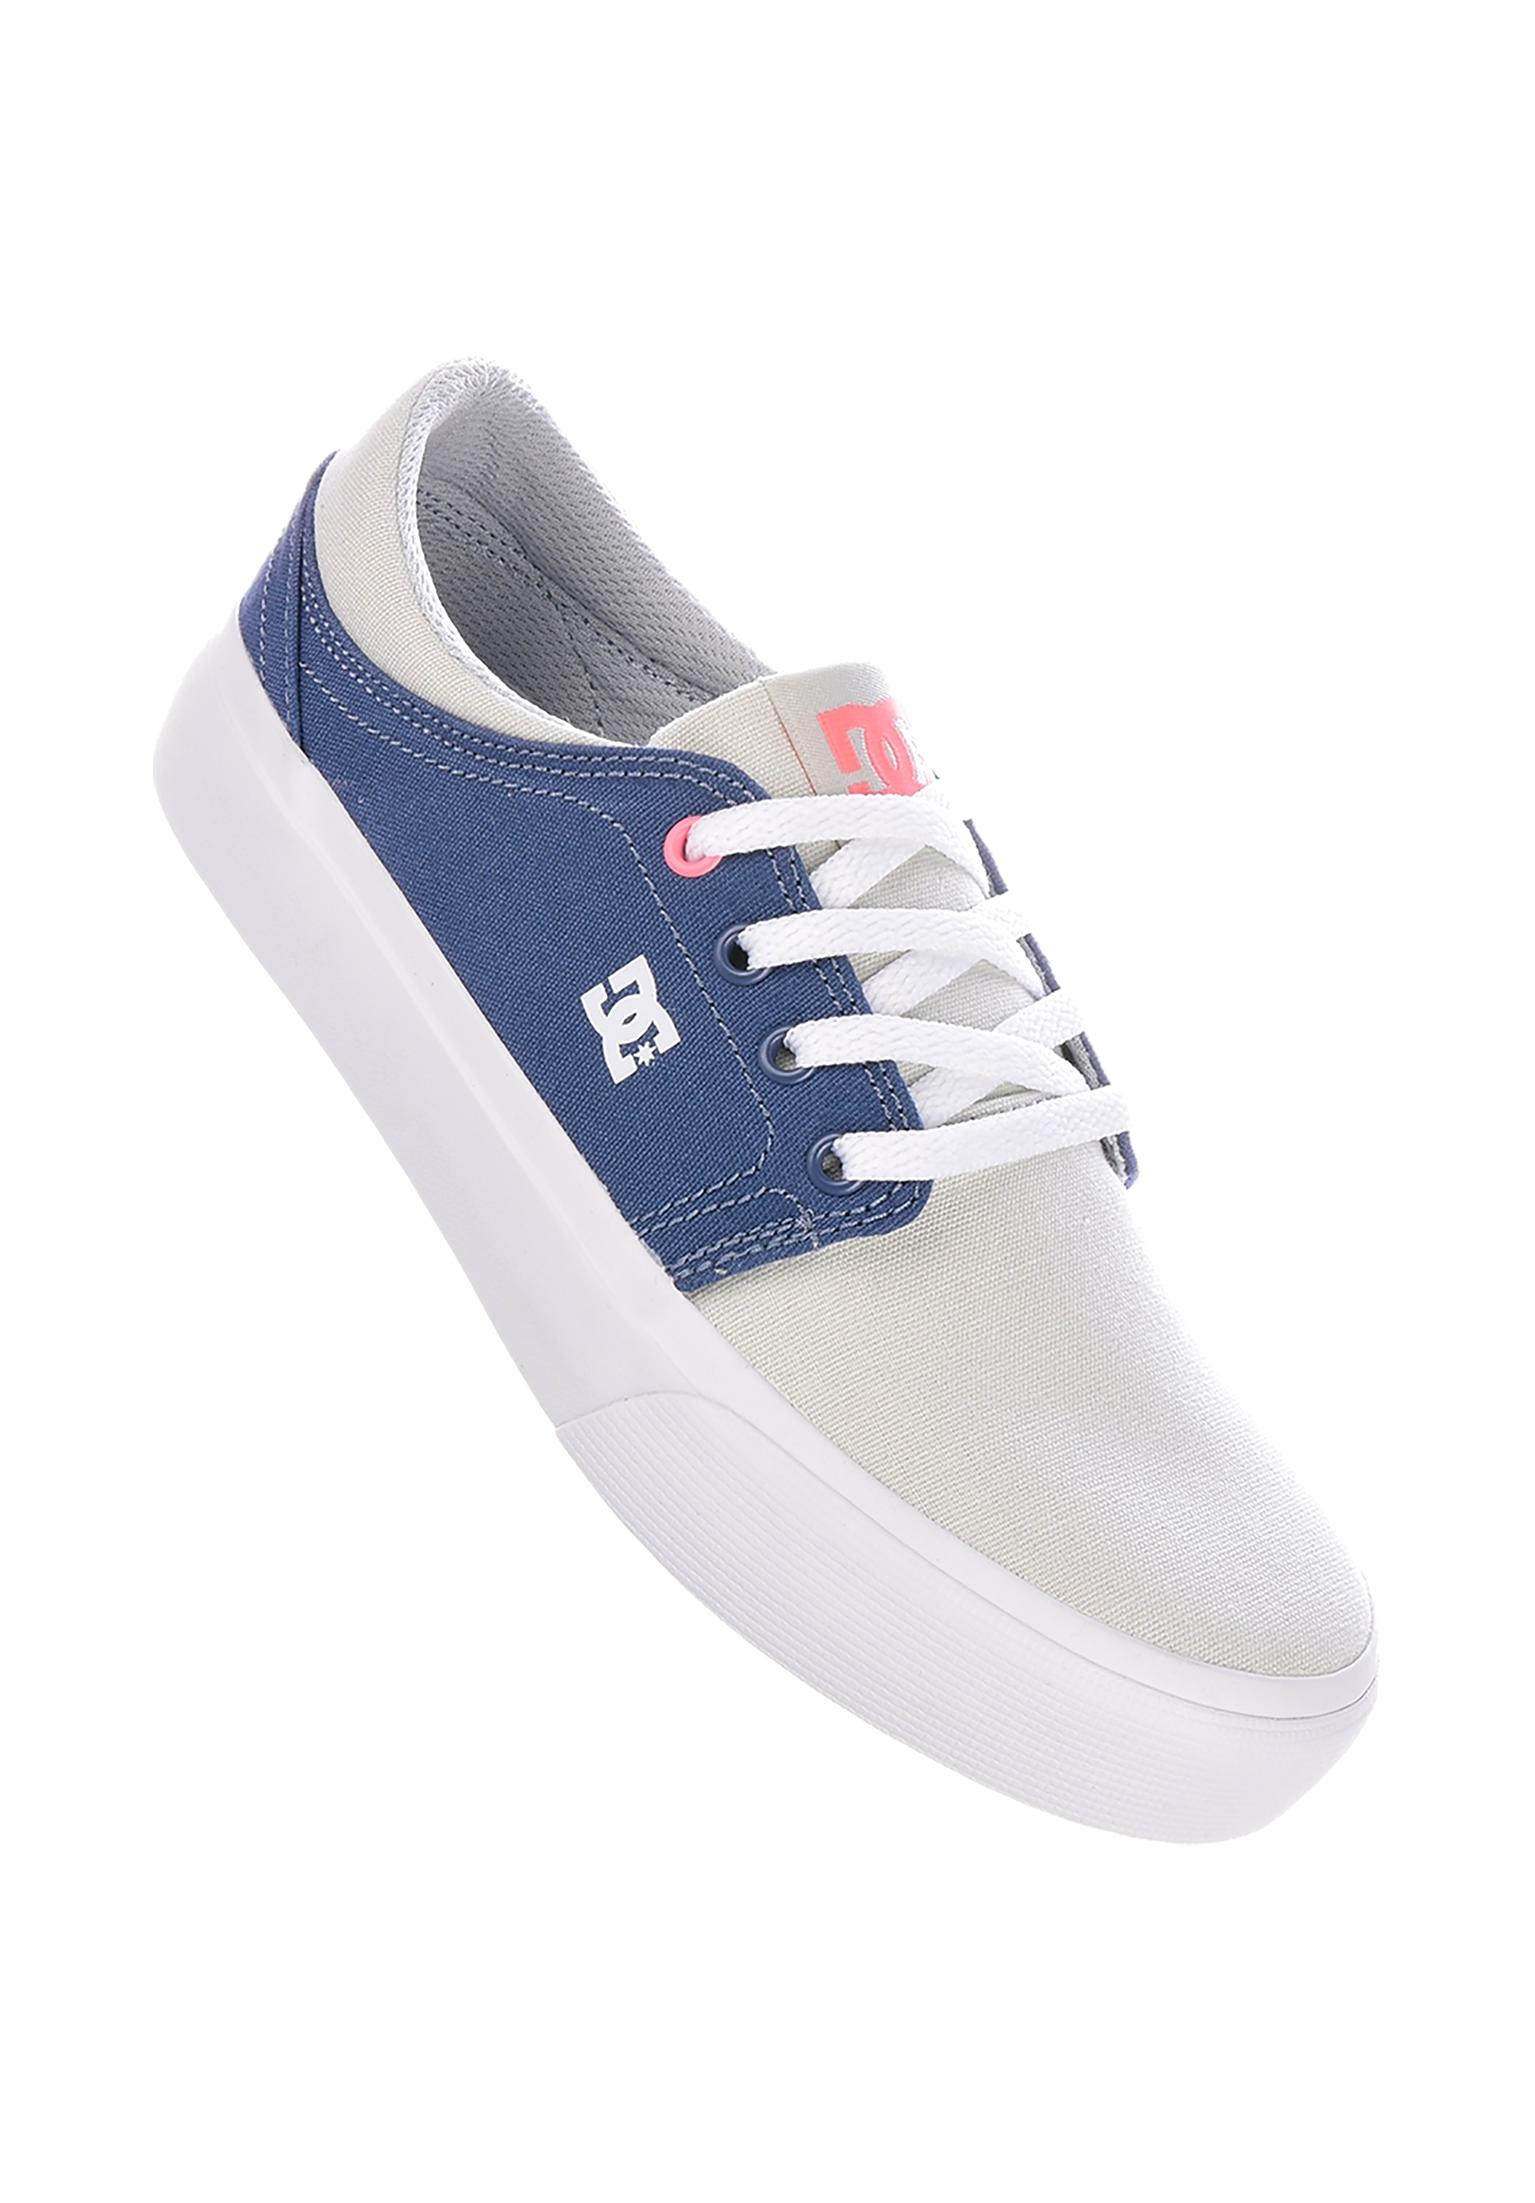 931f9d075bd2 Trase TX DC Shoes All Shoes in blue-grey for Women